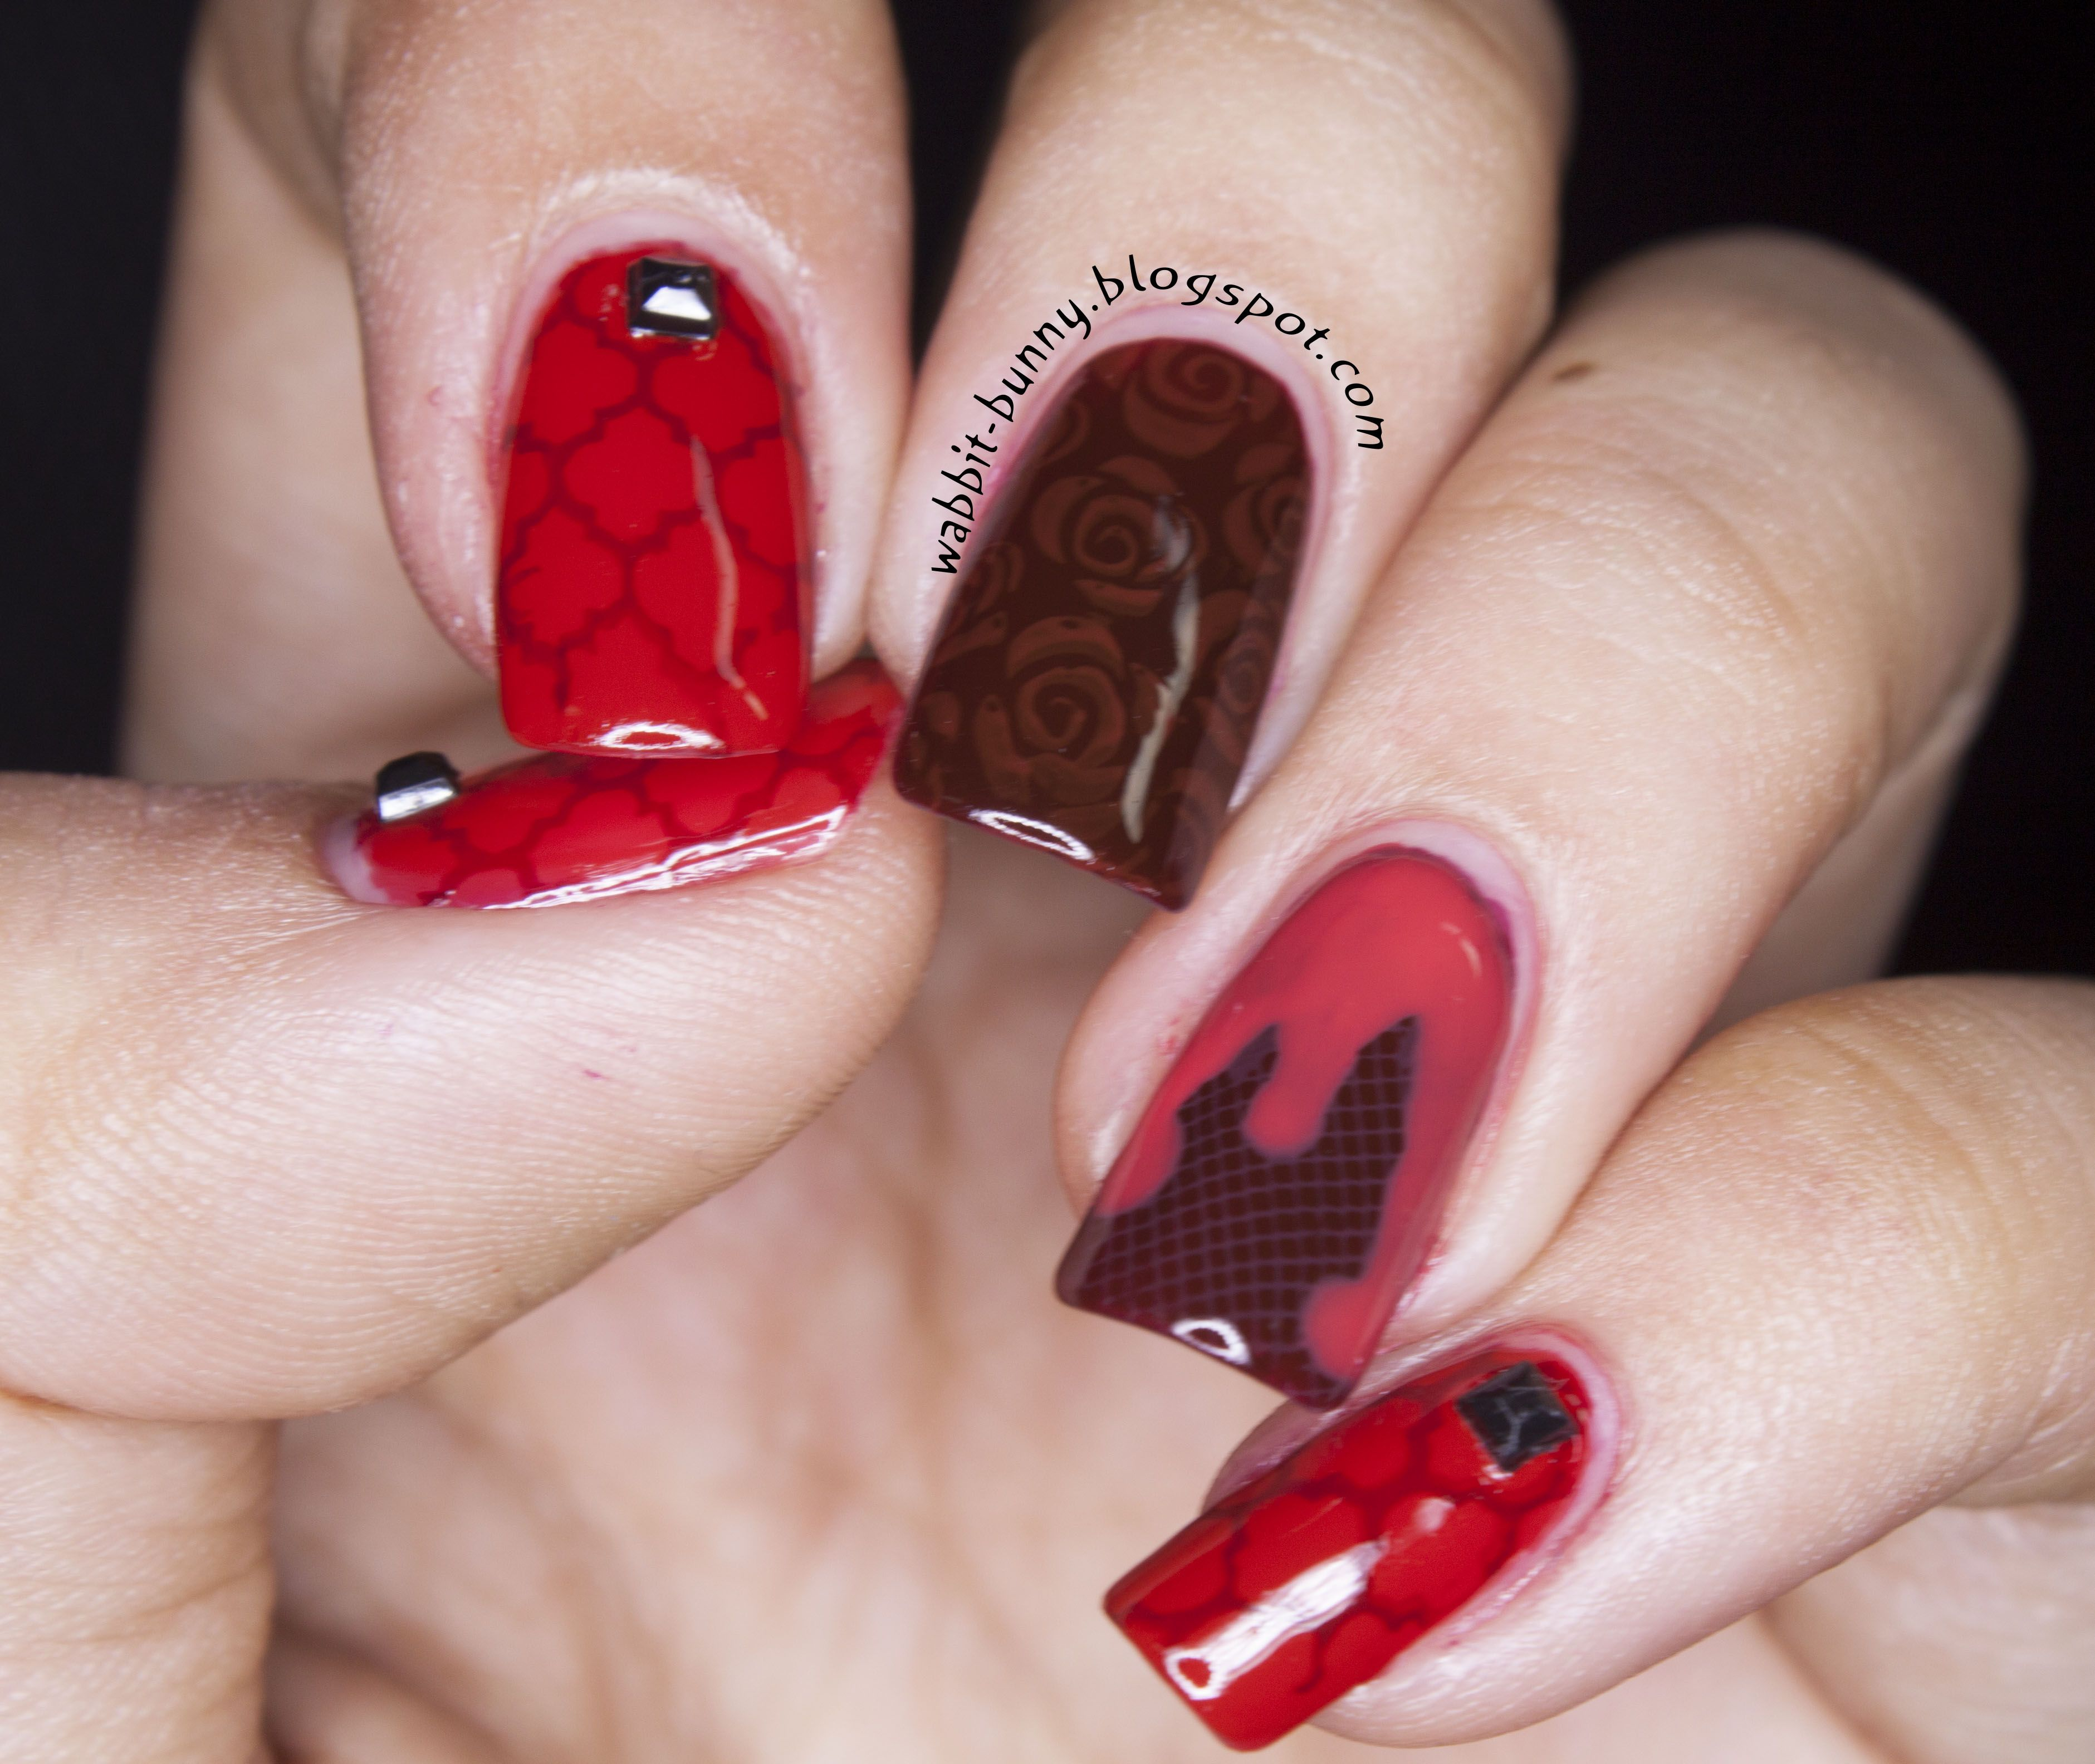 Inspired by The Vampire Diaries :) | Nail Art Community Pins ...